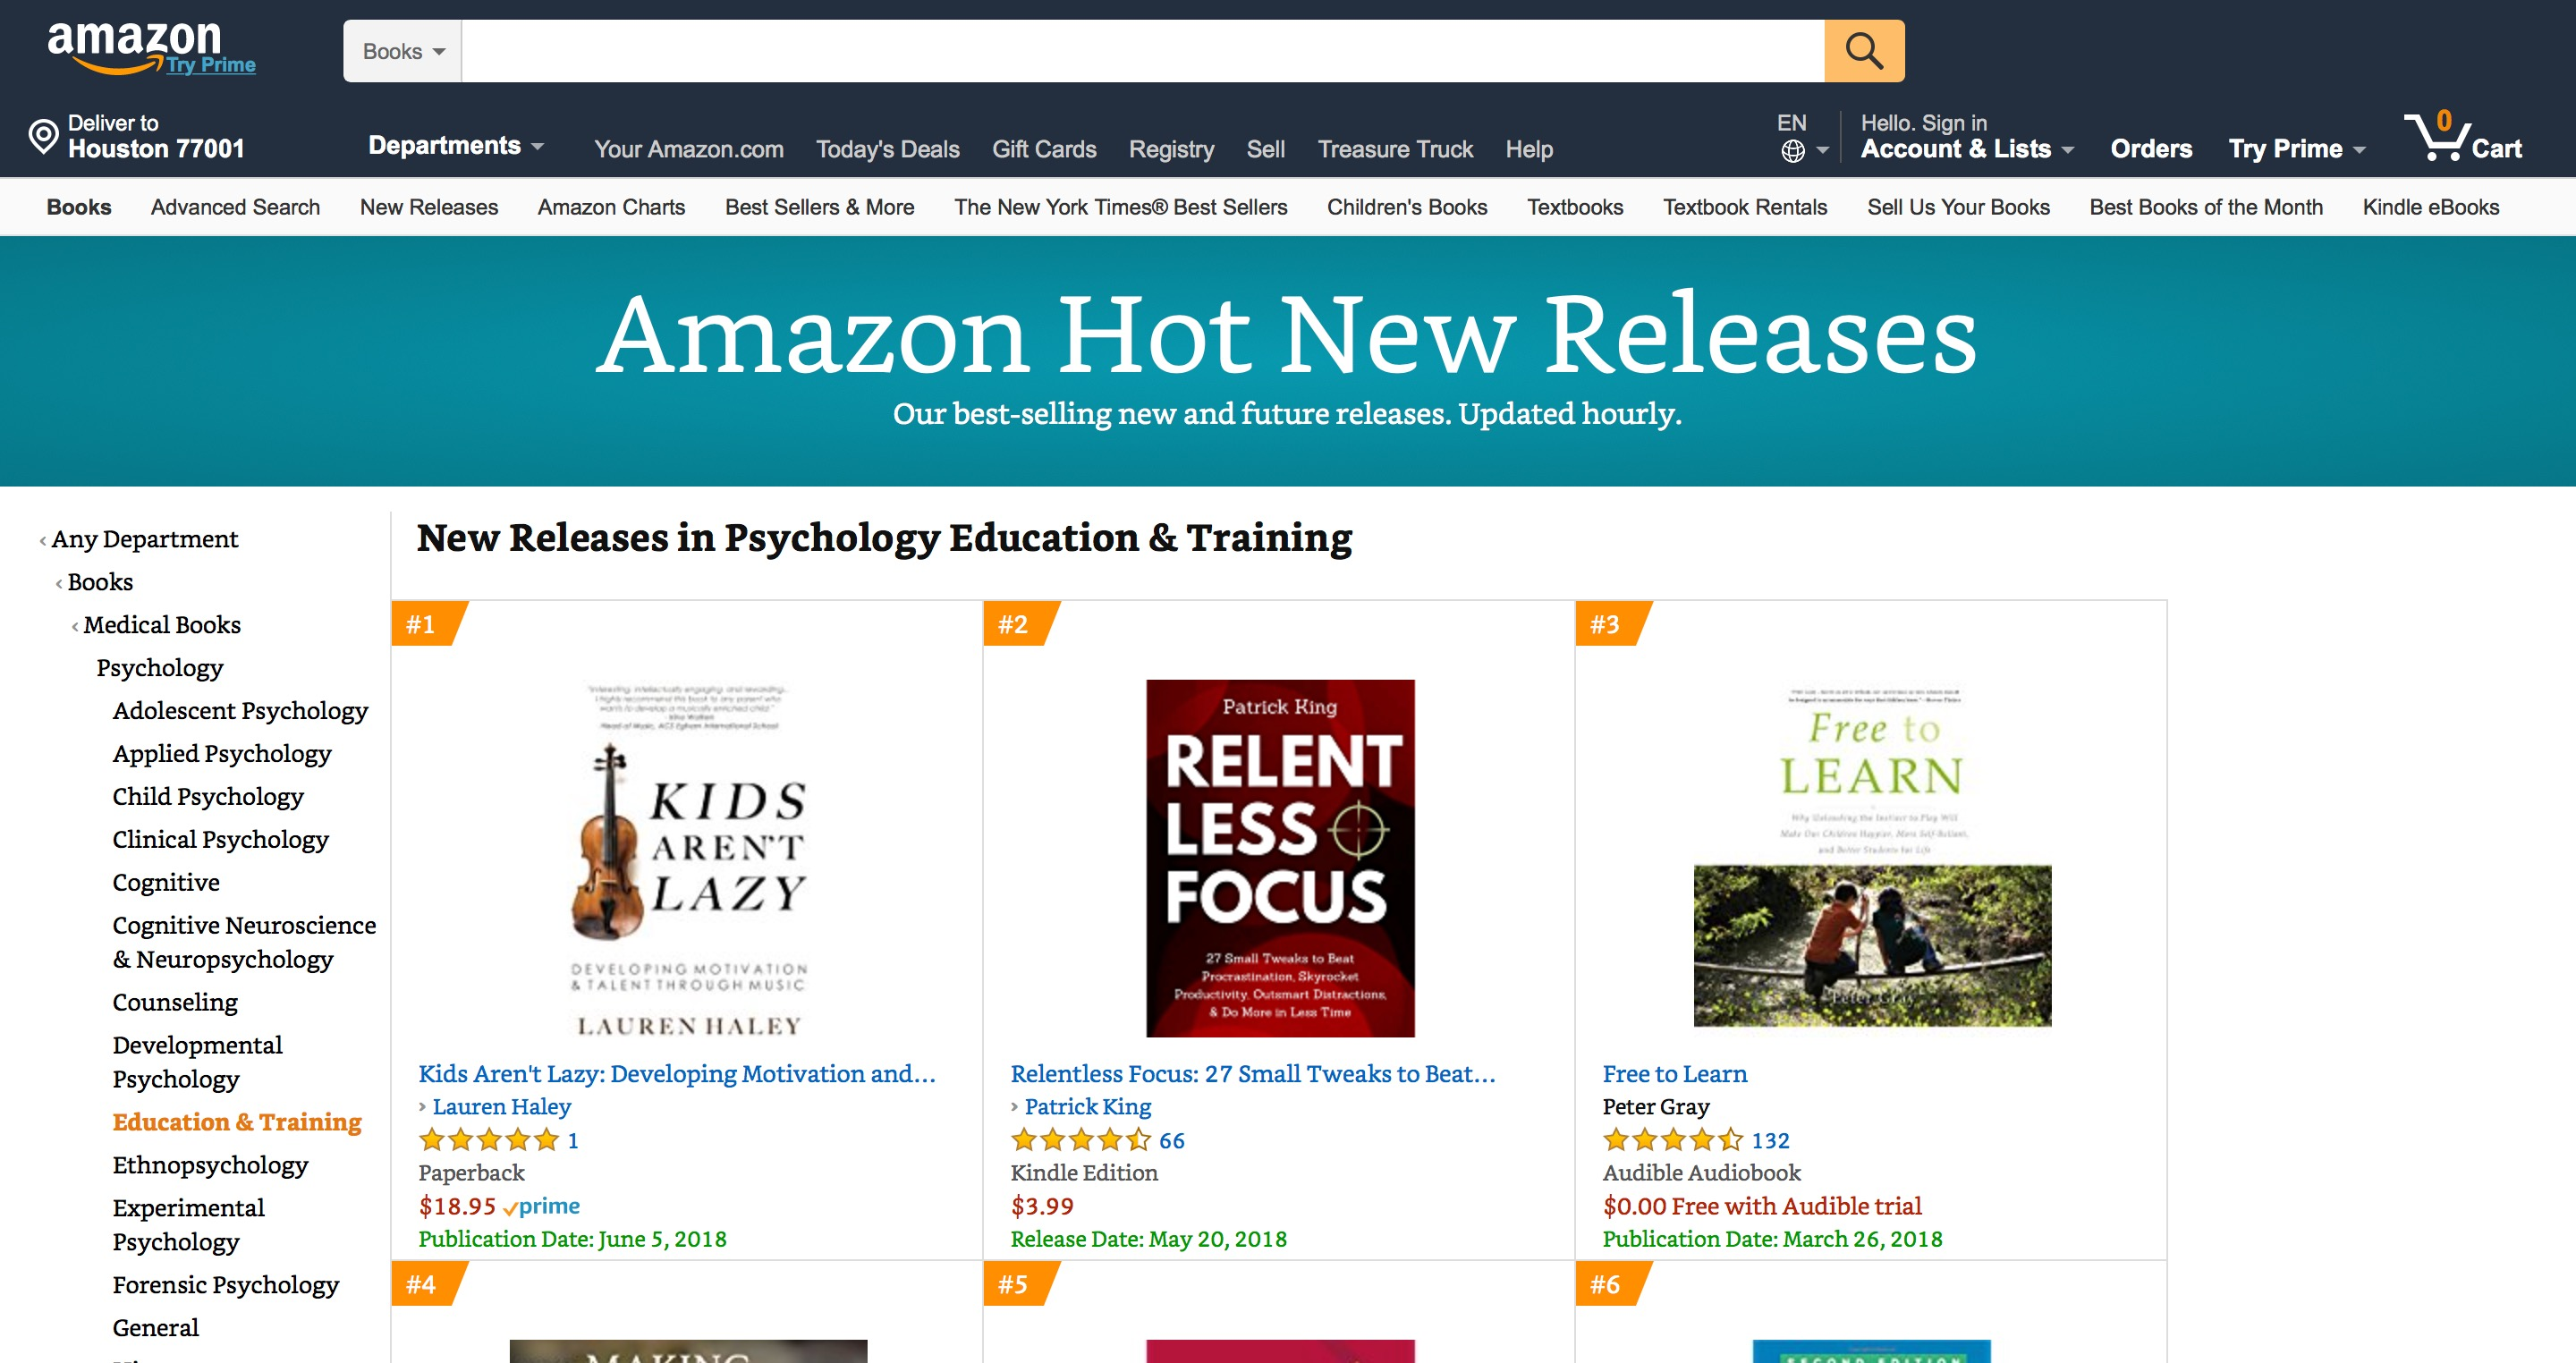 New Release Psychology Education & Training